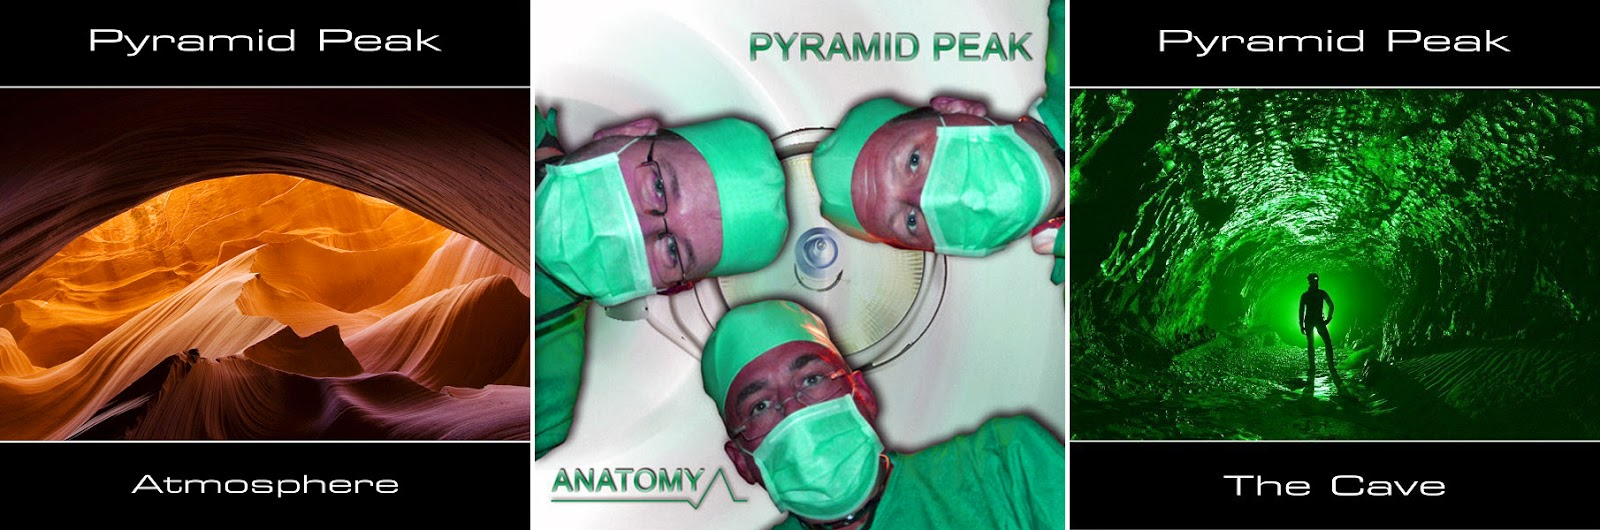 Pyramid Peak CD covers / source : www.syngate.biz